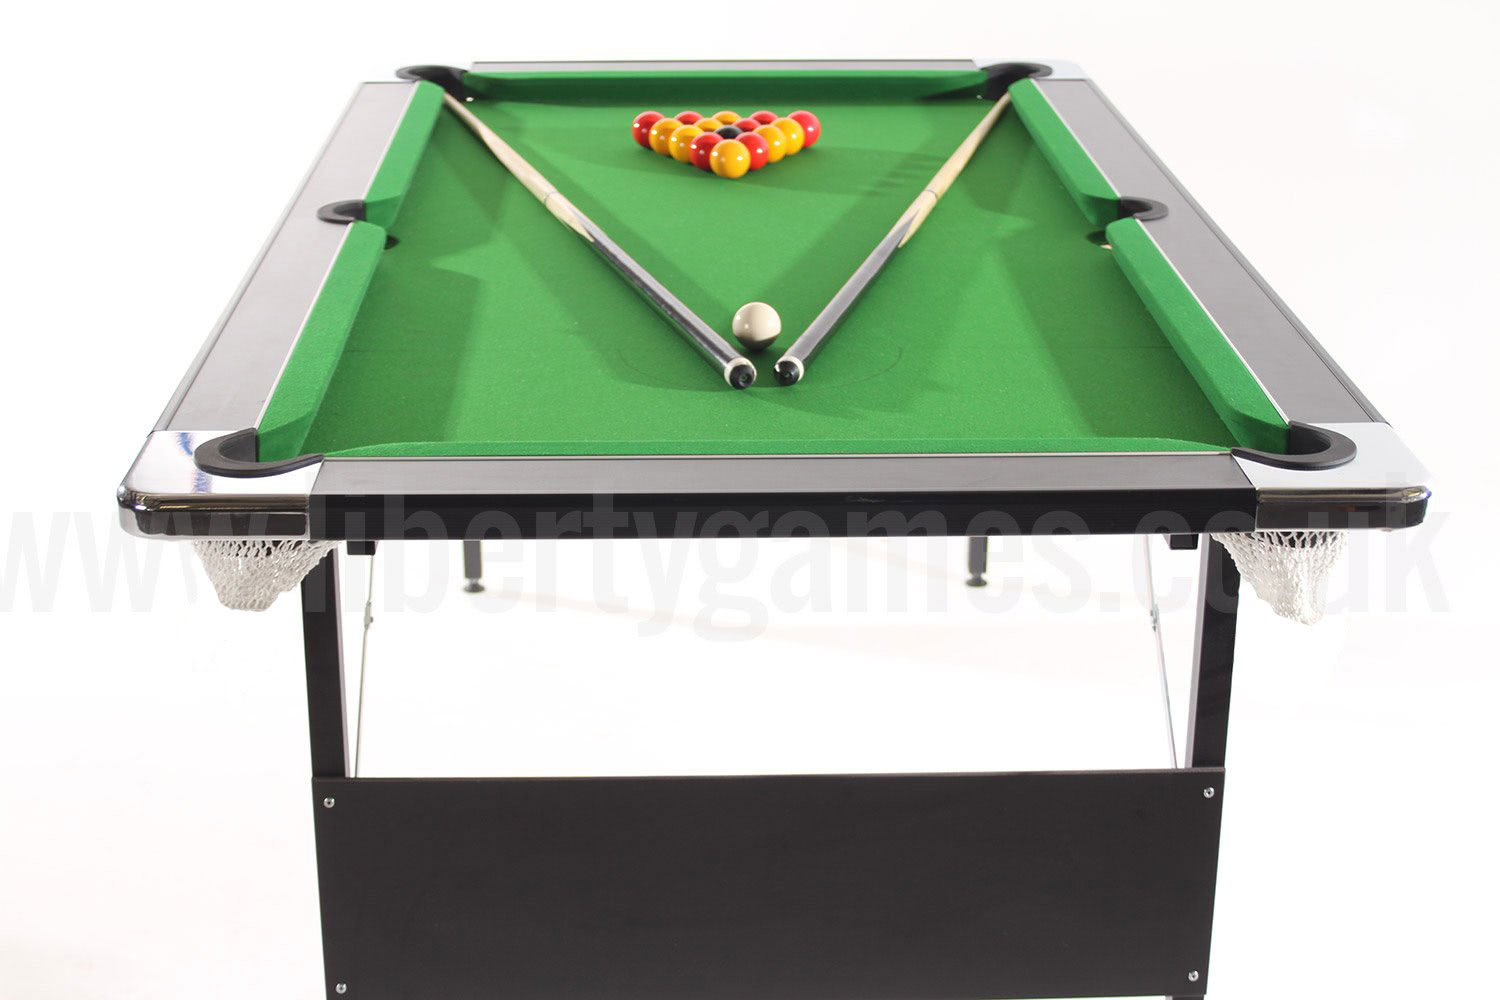 Deluxe Foldaway Pool Table With Green Cloth